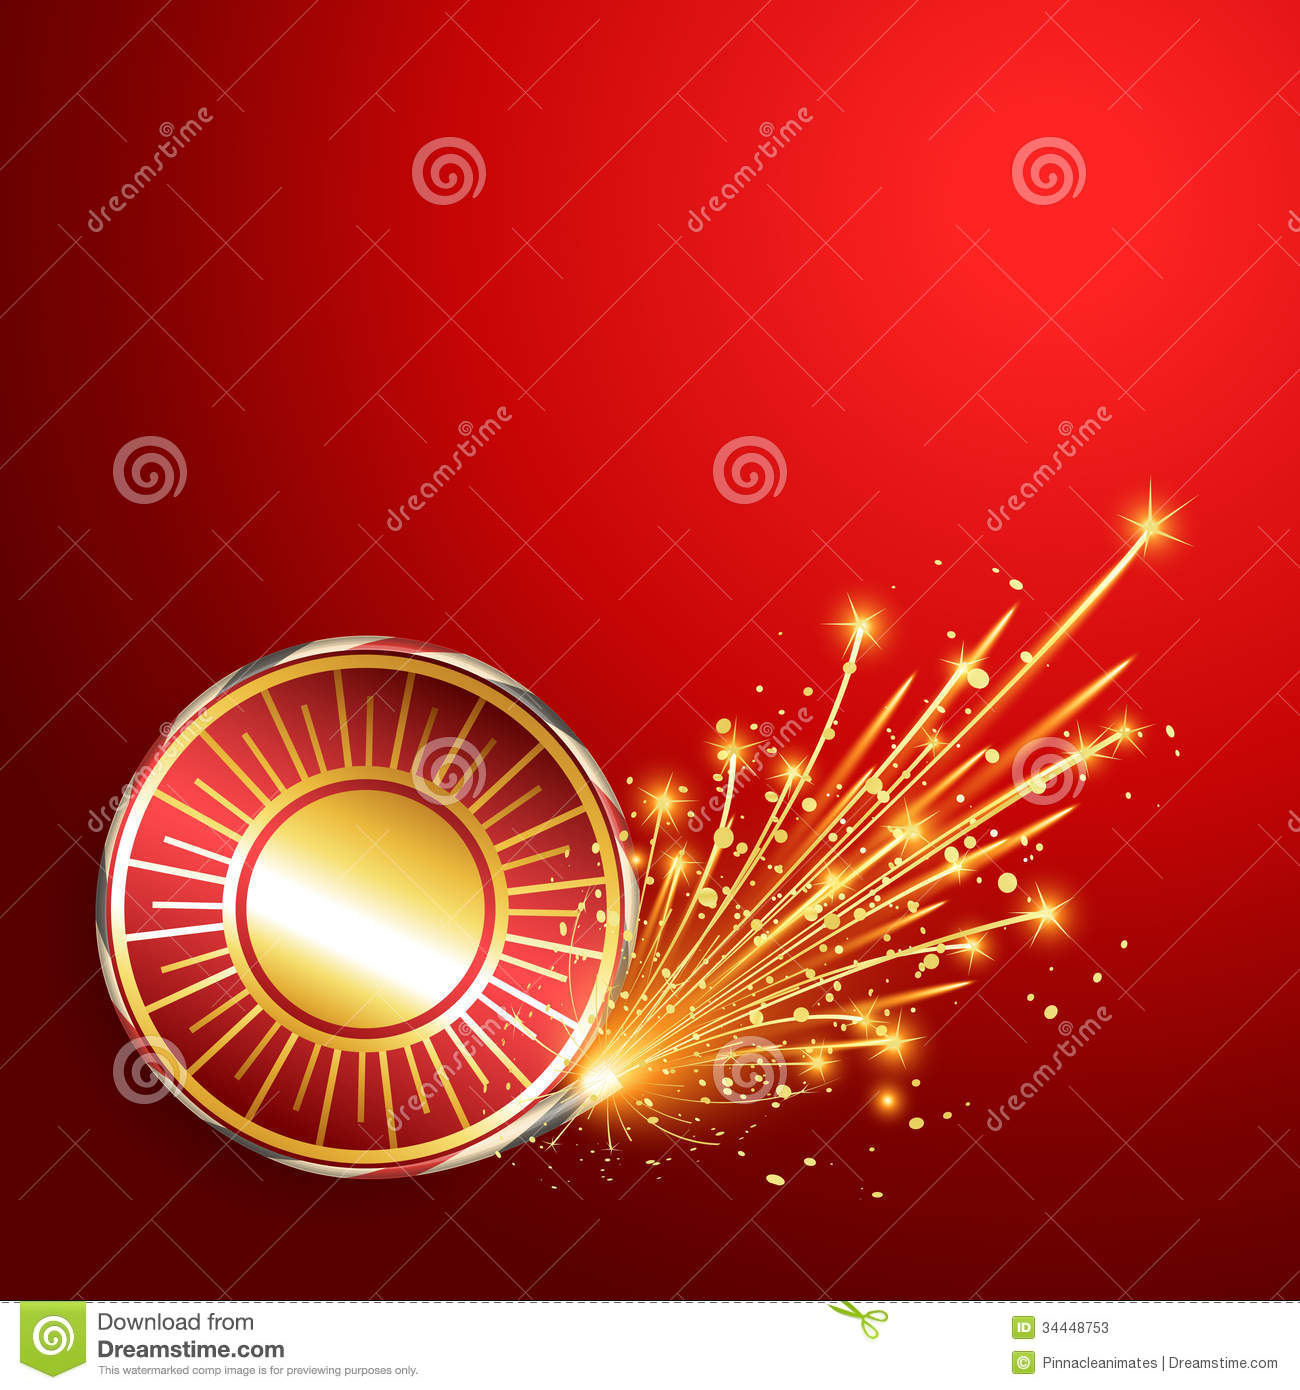 burning crackers Free essays on disadvantages of burning crackers get help with your writing 1 through 30.